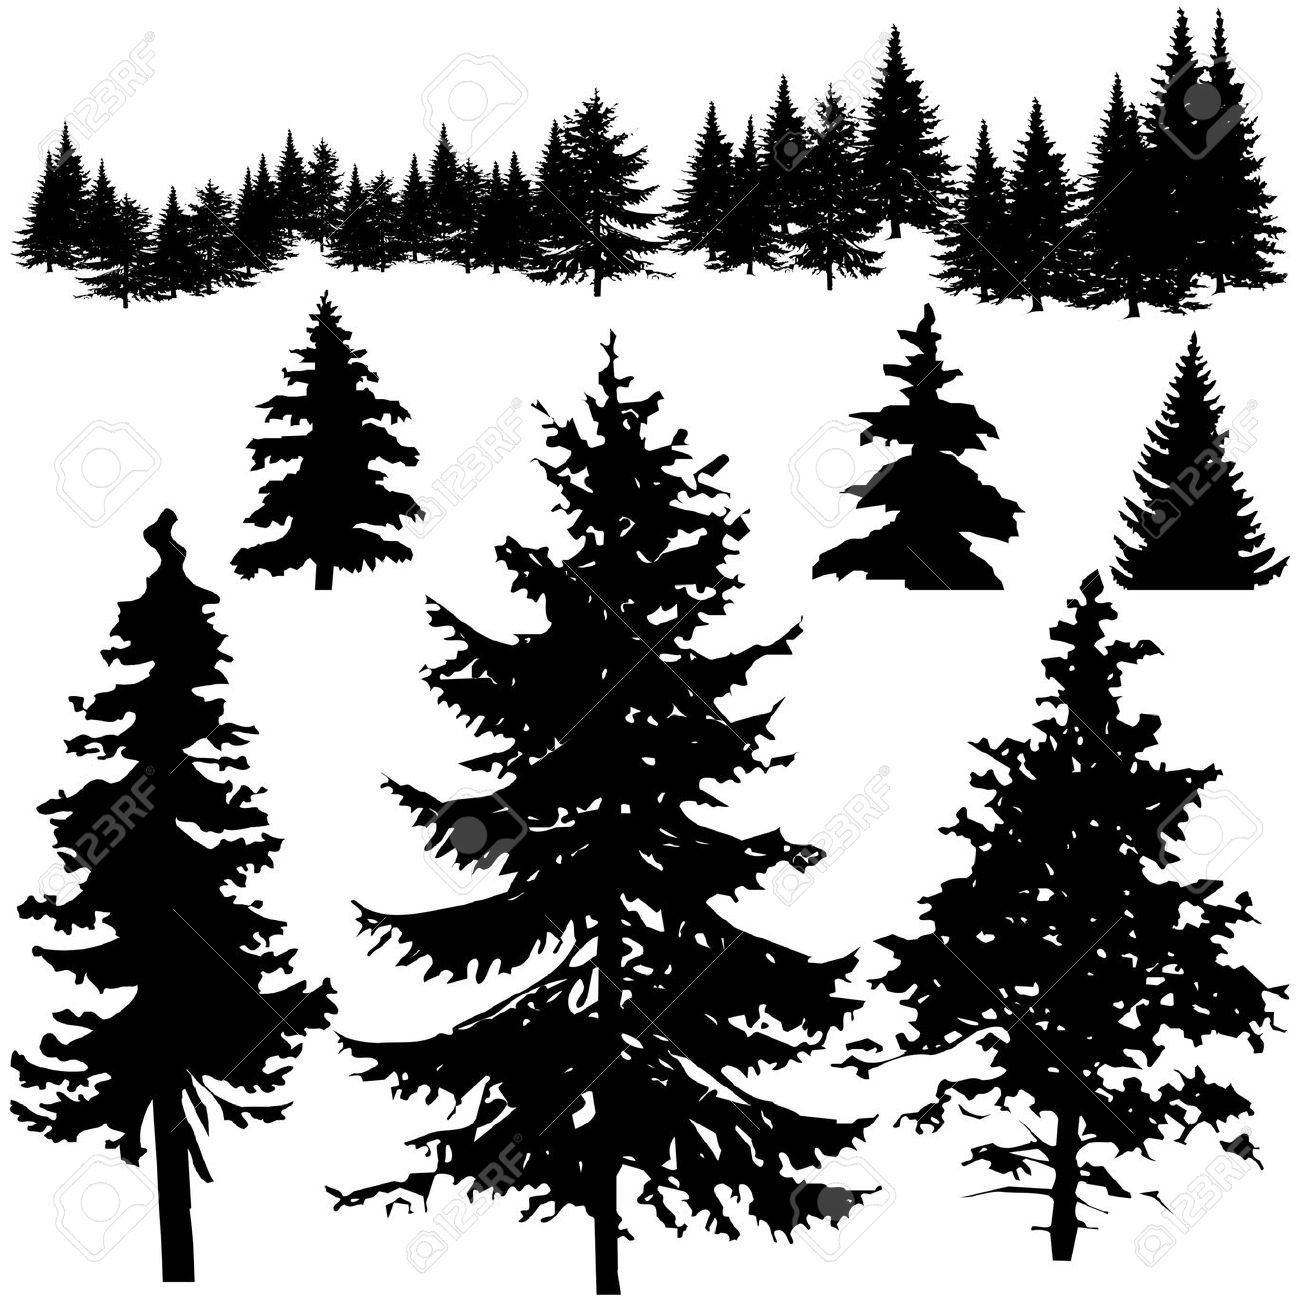 hight resolution of pine tree silhouette clipart 2